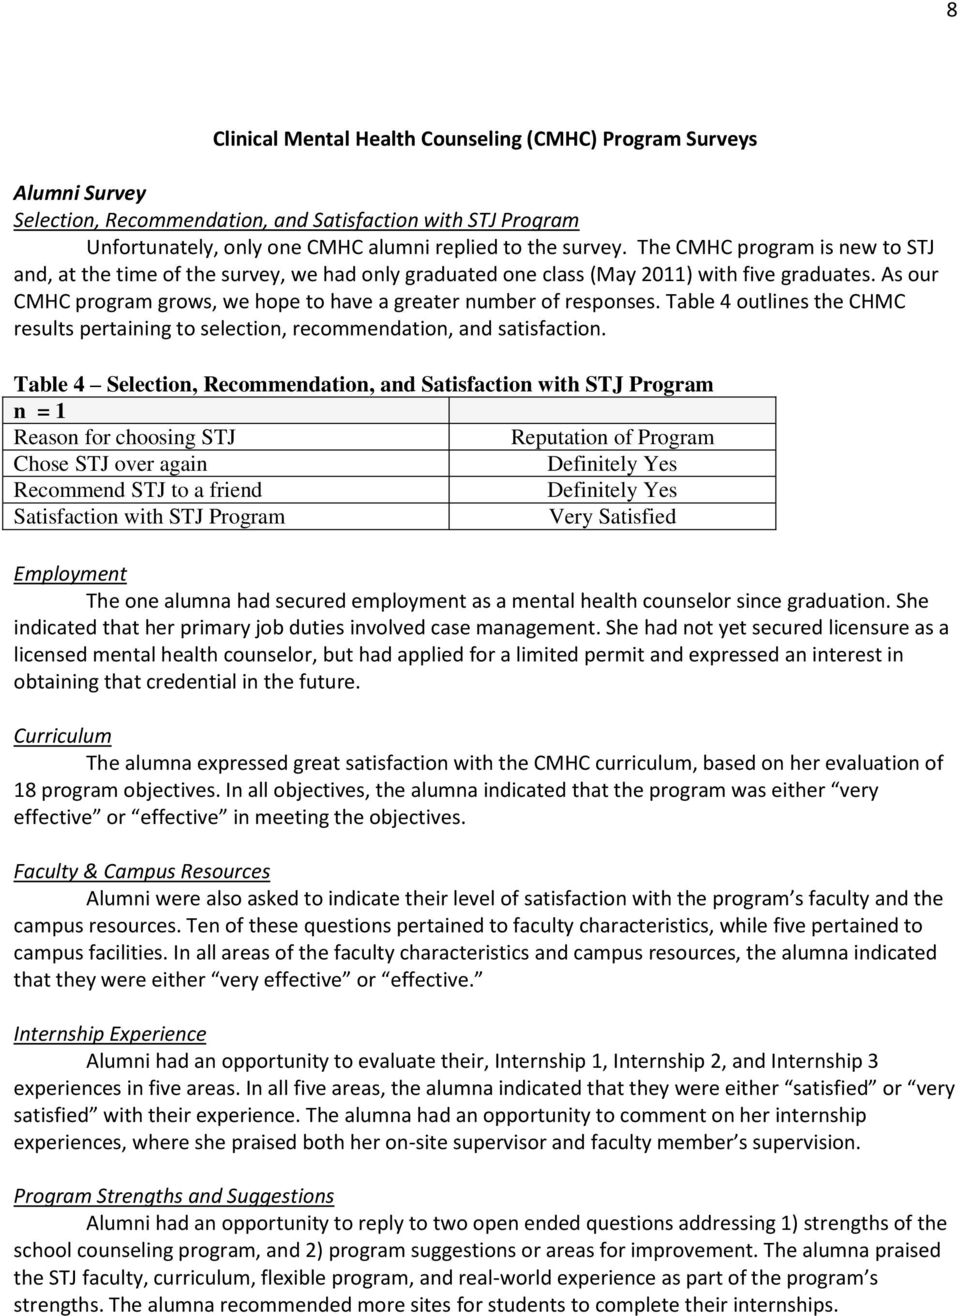 Table 4 outlines the CHMC results pertaining to selection, recommendation, and satisfaction.